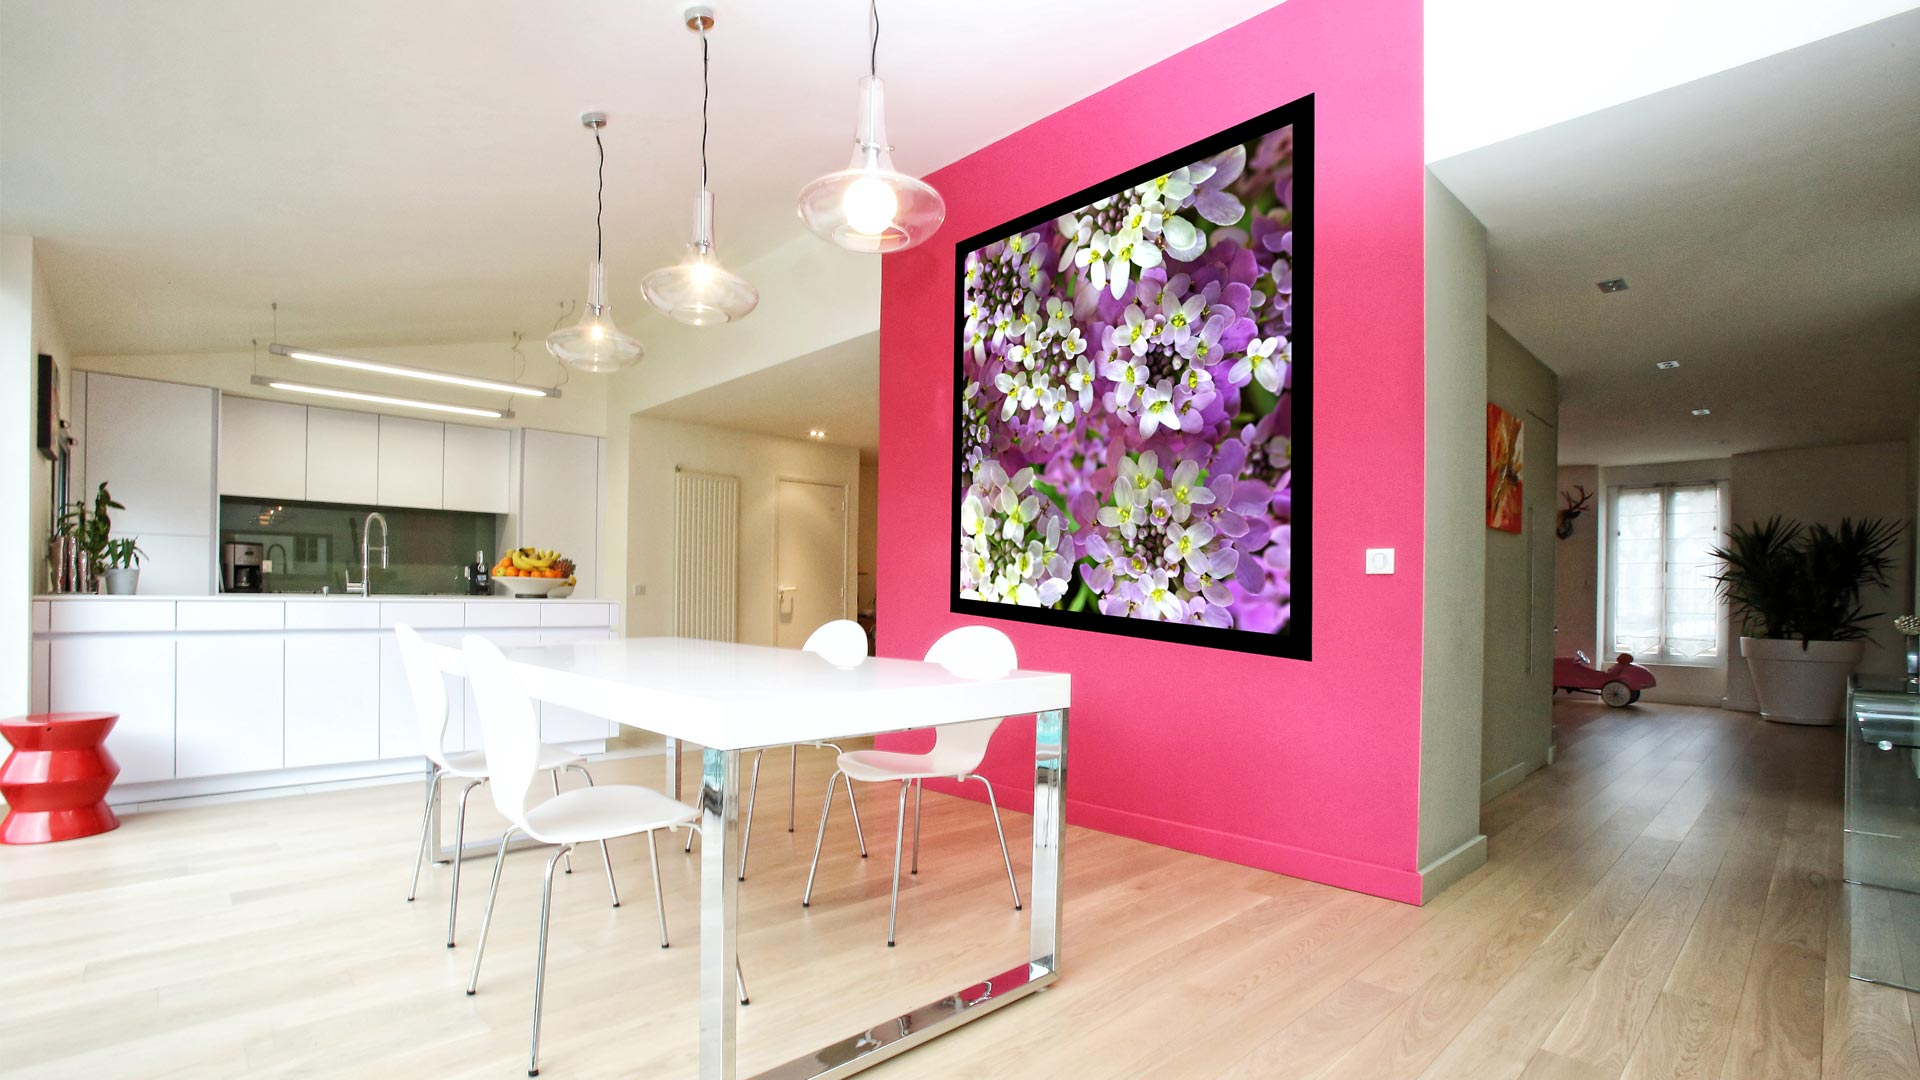 Photo decoration interieure meilleures images d for Modele de decoration interieure maison